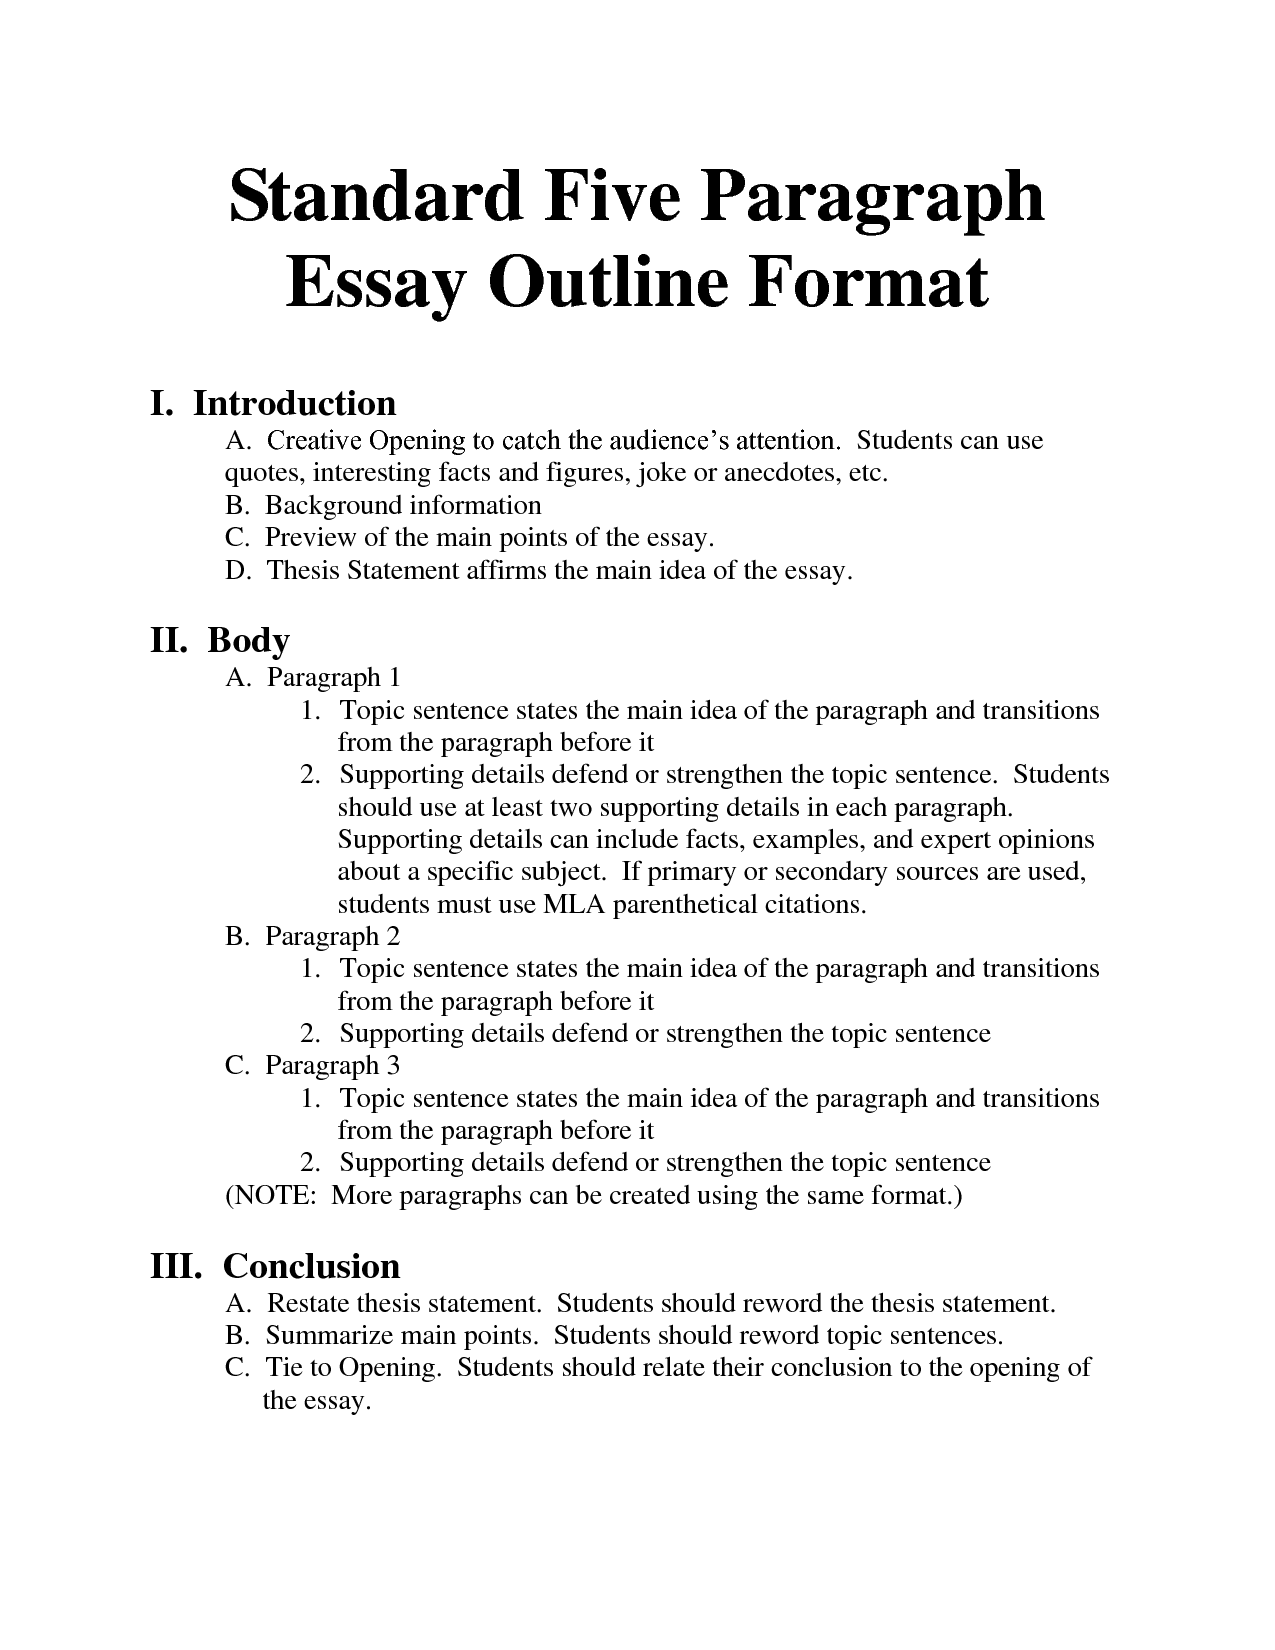 Standard essay format bing images essays homeschool pinterest